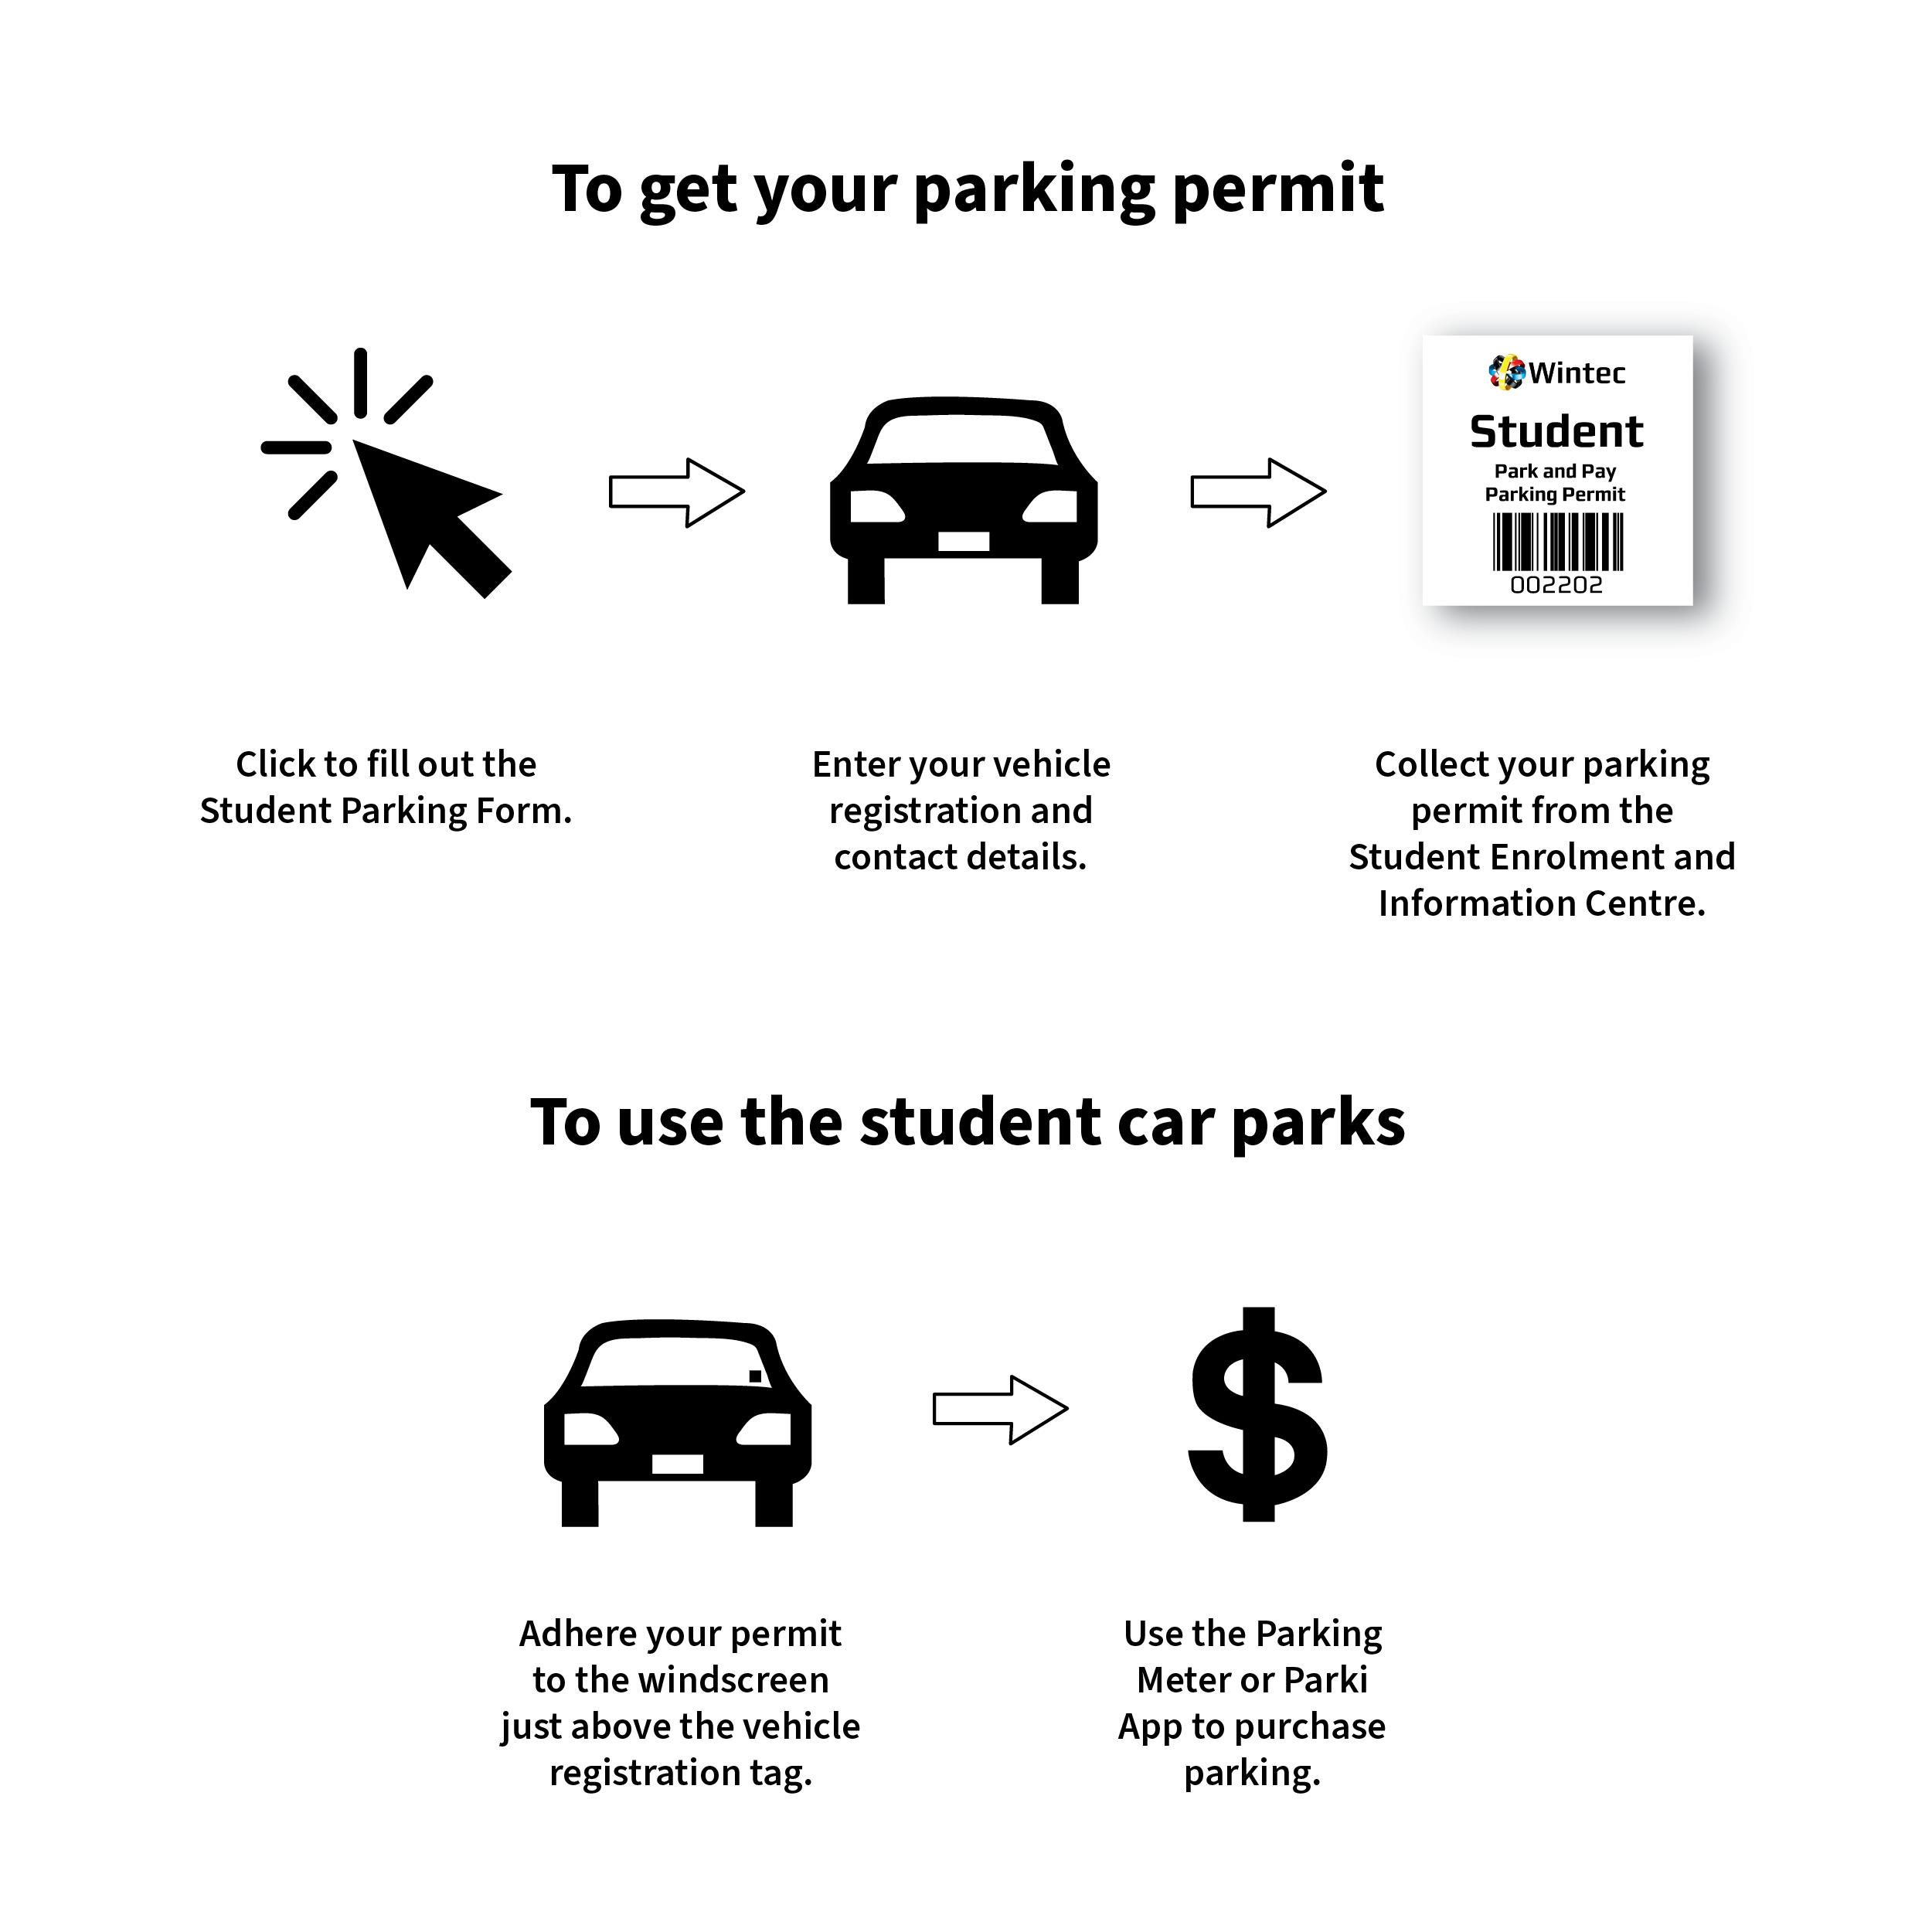 How to get and use your student parking permit